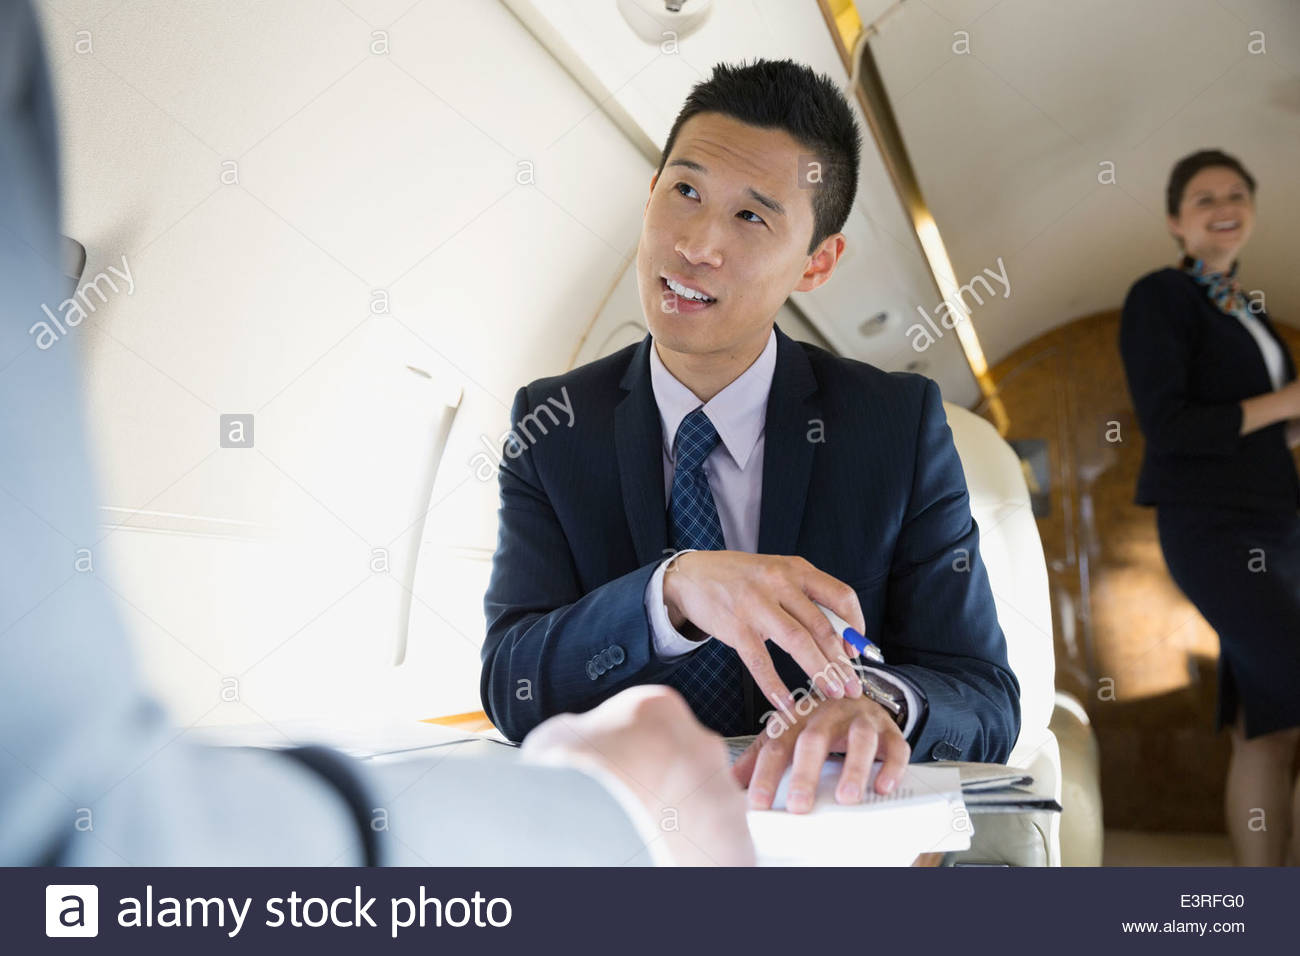 Businessmen talking on corporate jet - Stock Image